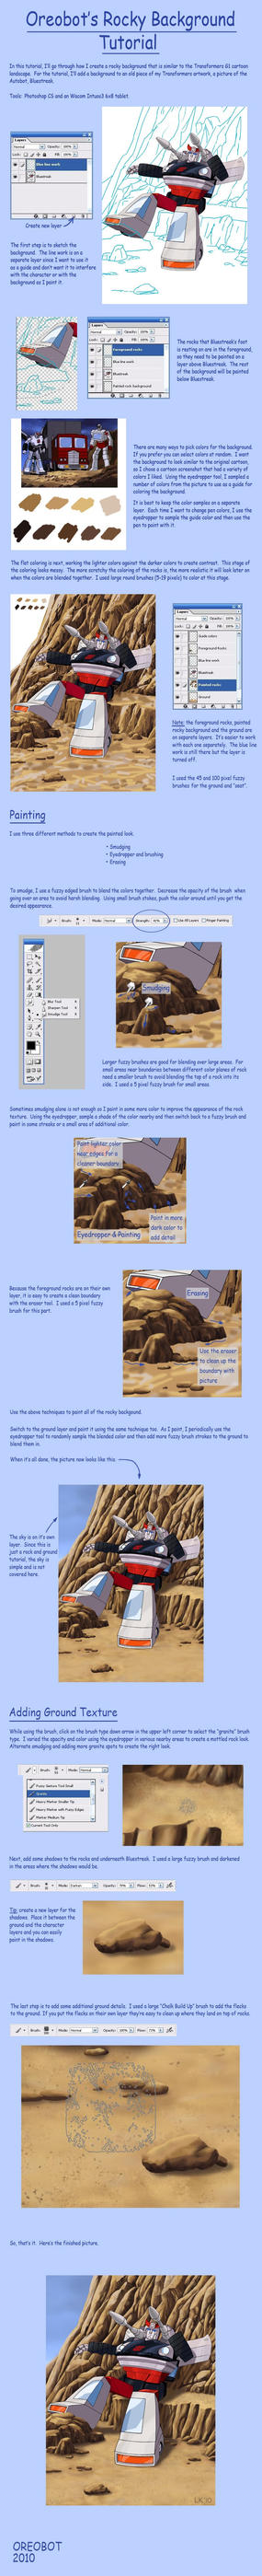 Rocky Background Tutorial by Oreobot